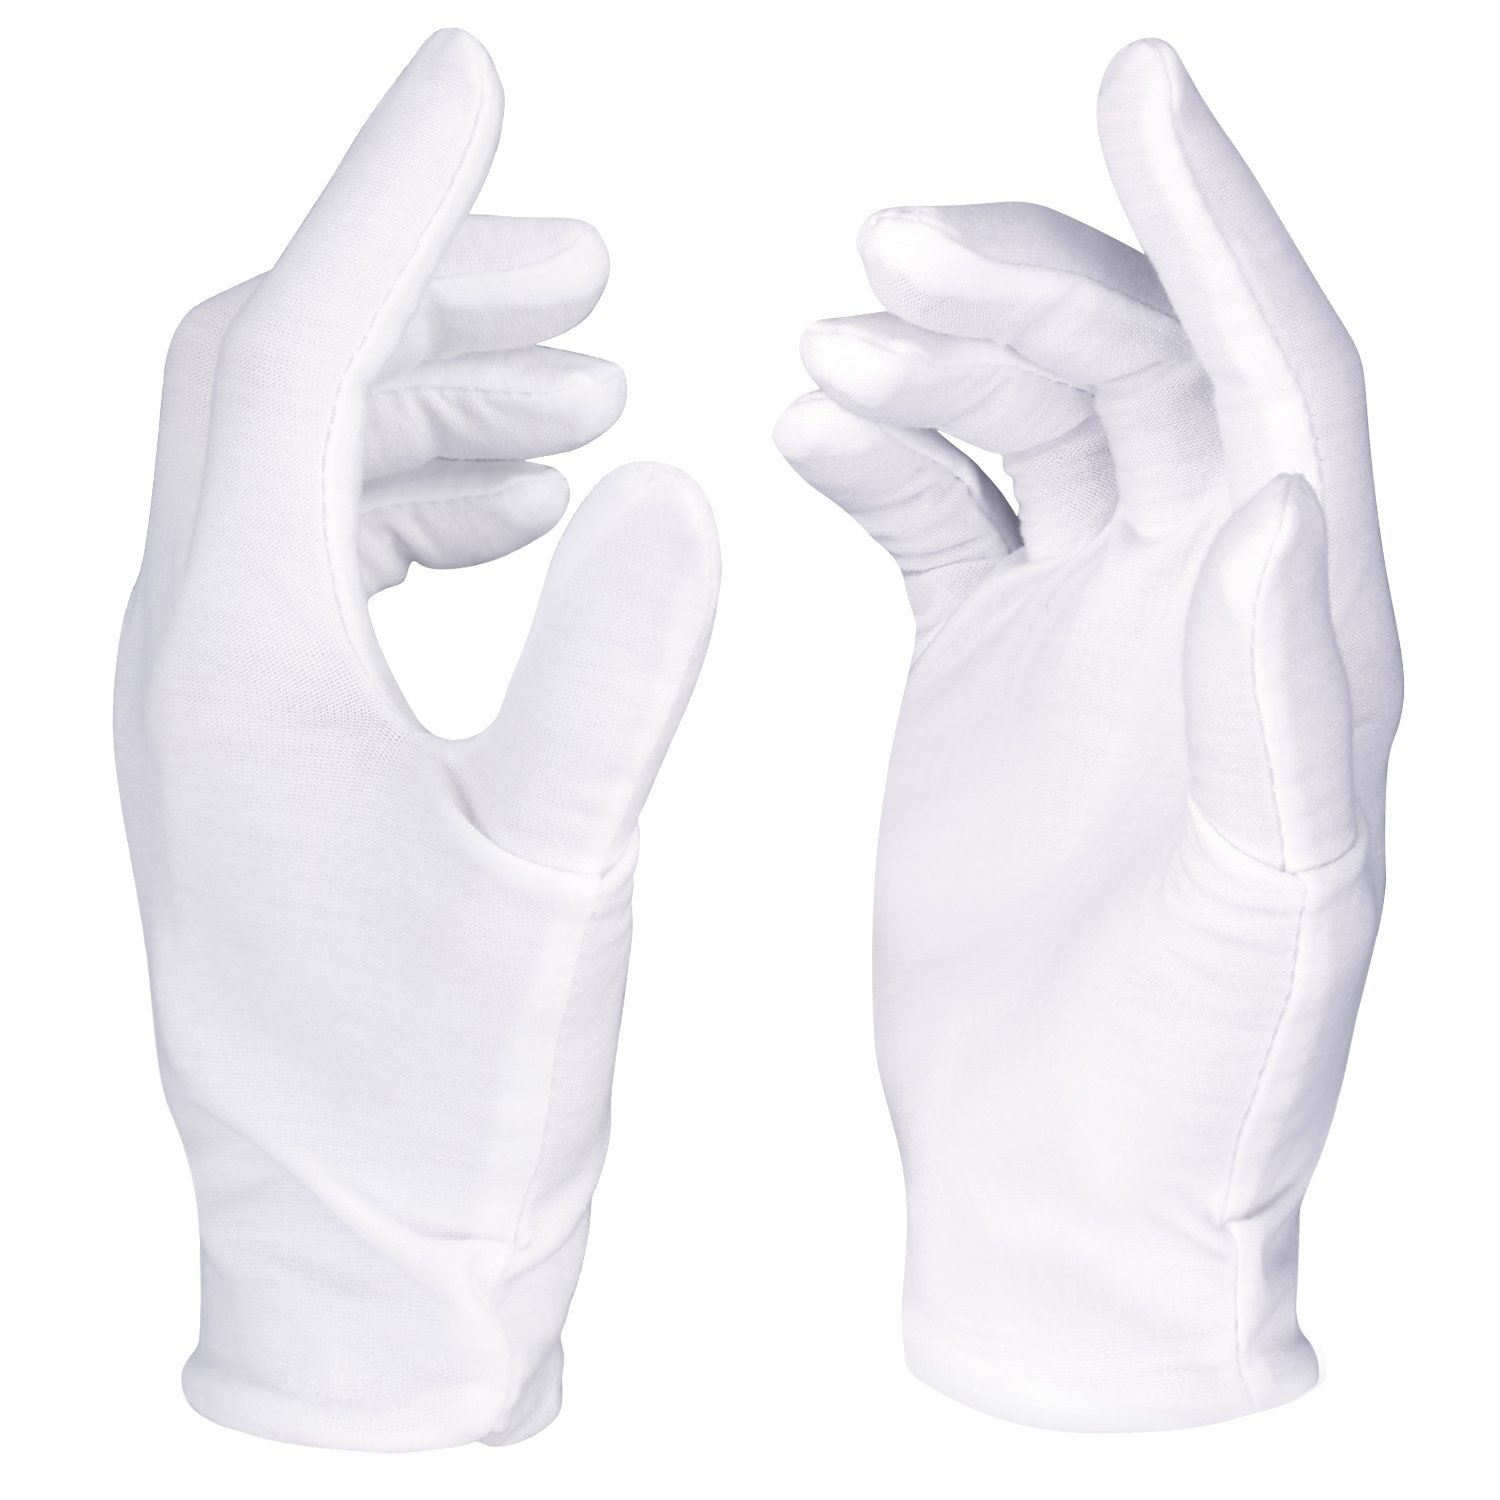 Neewer 12 Pairs (24 Gloves) 100% Cotton Lisle White Inspection Work Gloves for Coin, Jewelry, Silver, or Photo Inspection